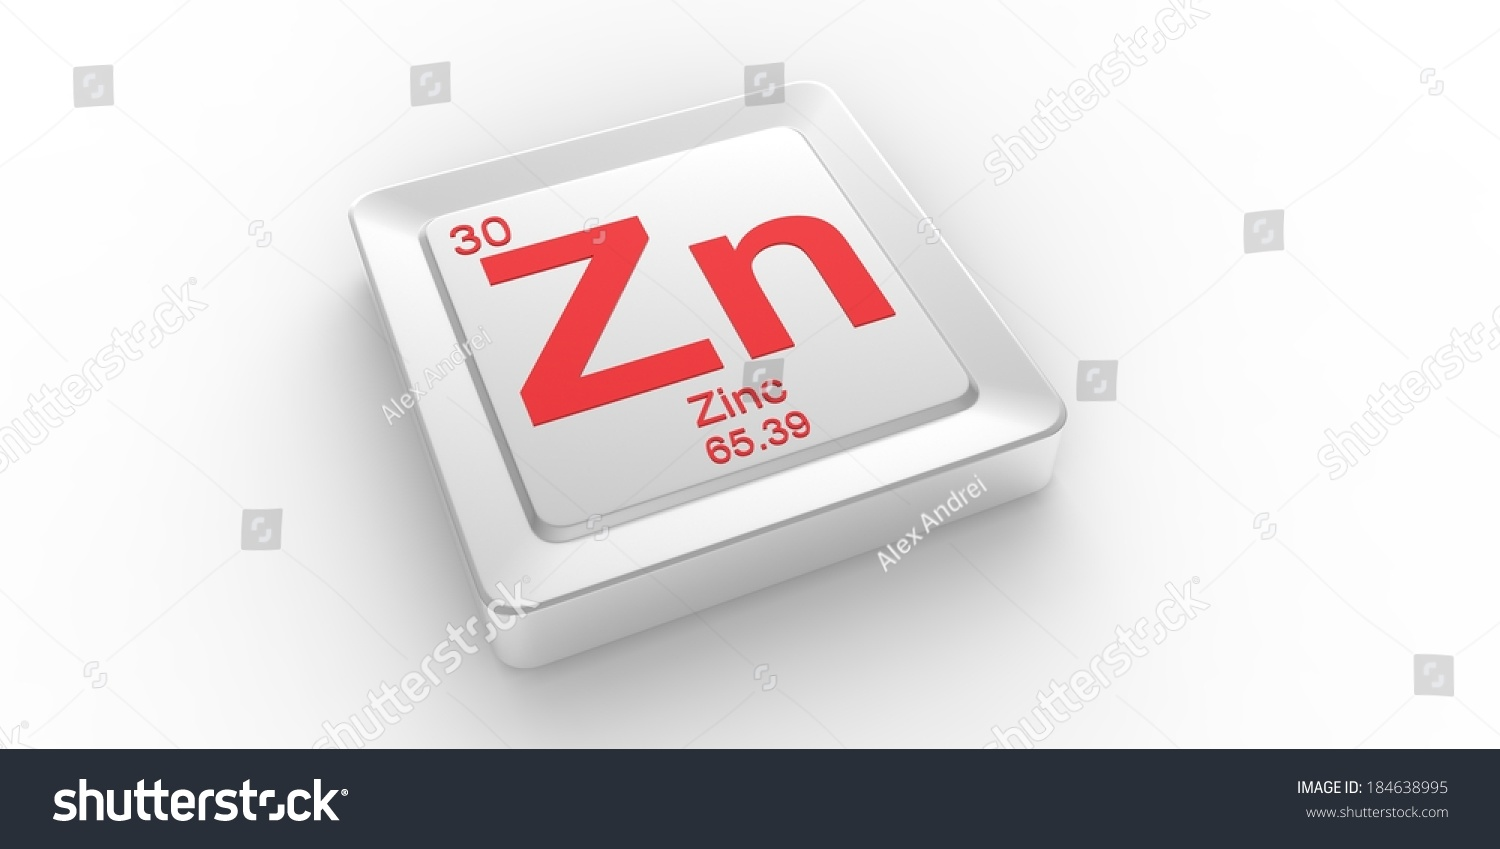 Zn symbol 30 material zinc chemical stock illustration 184638995 zn symbol 30 material for zinc chemical element of the periodic table buycottarizona Gallery